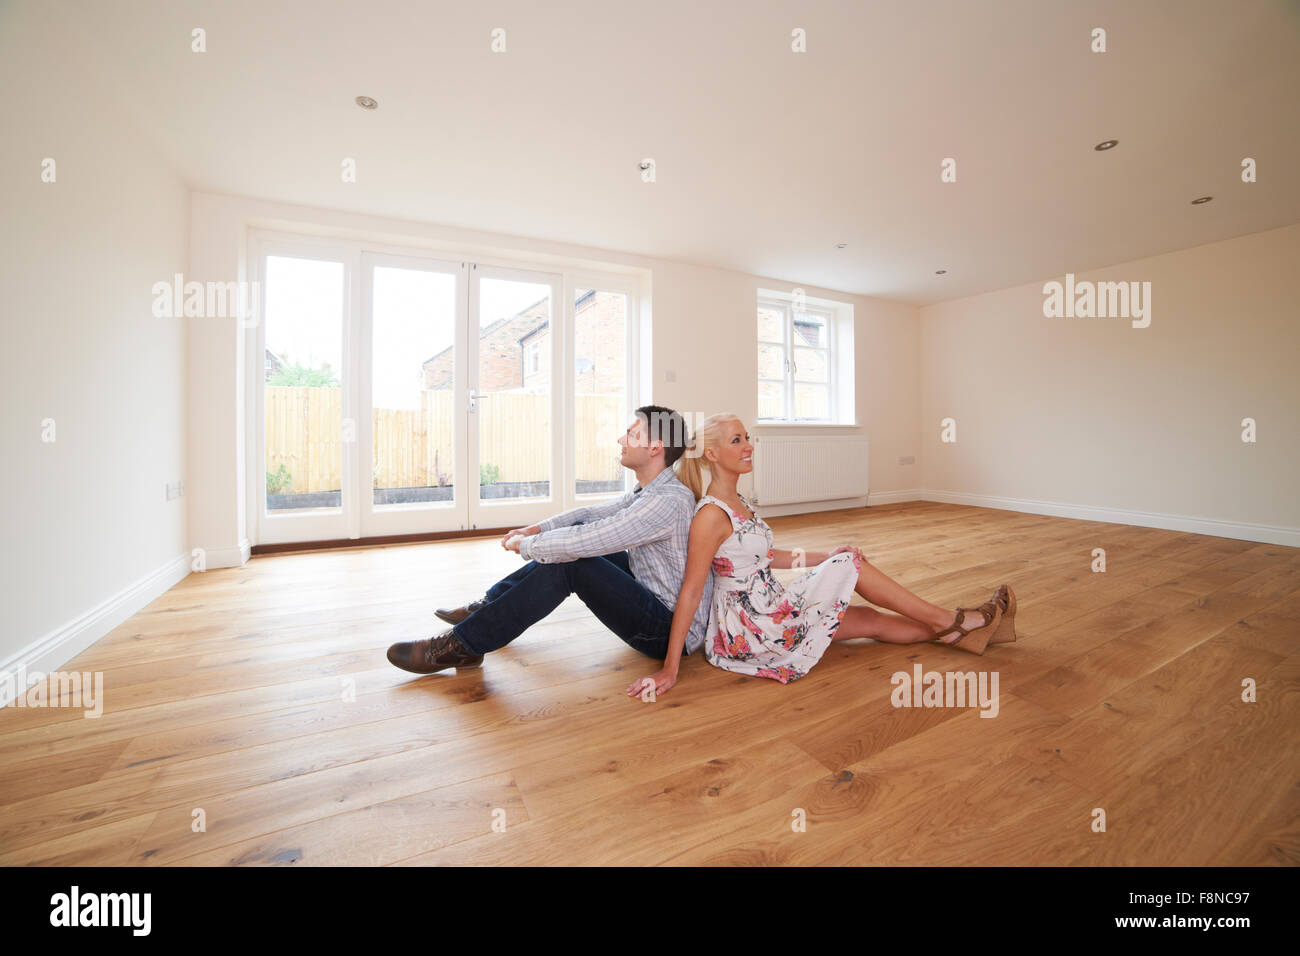 Young Couple Sitting In Empty Room Of Dream House - Stock Image